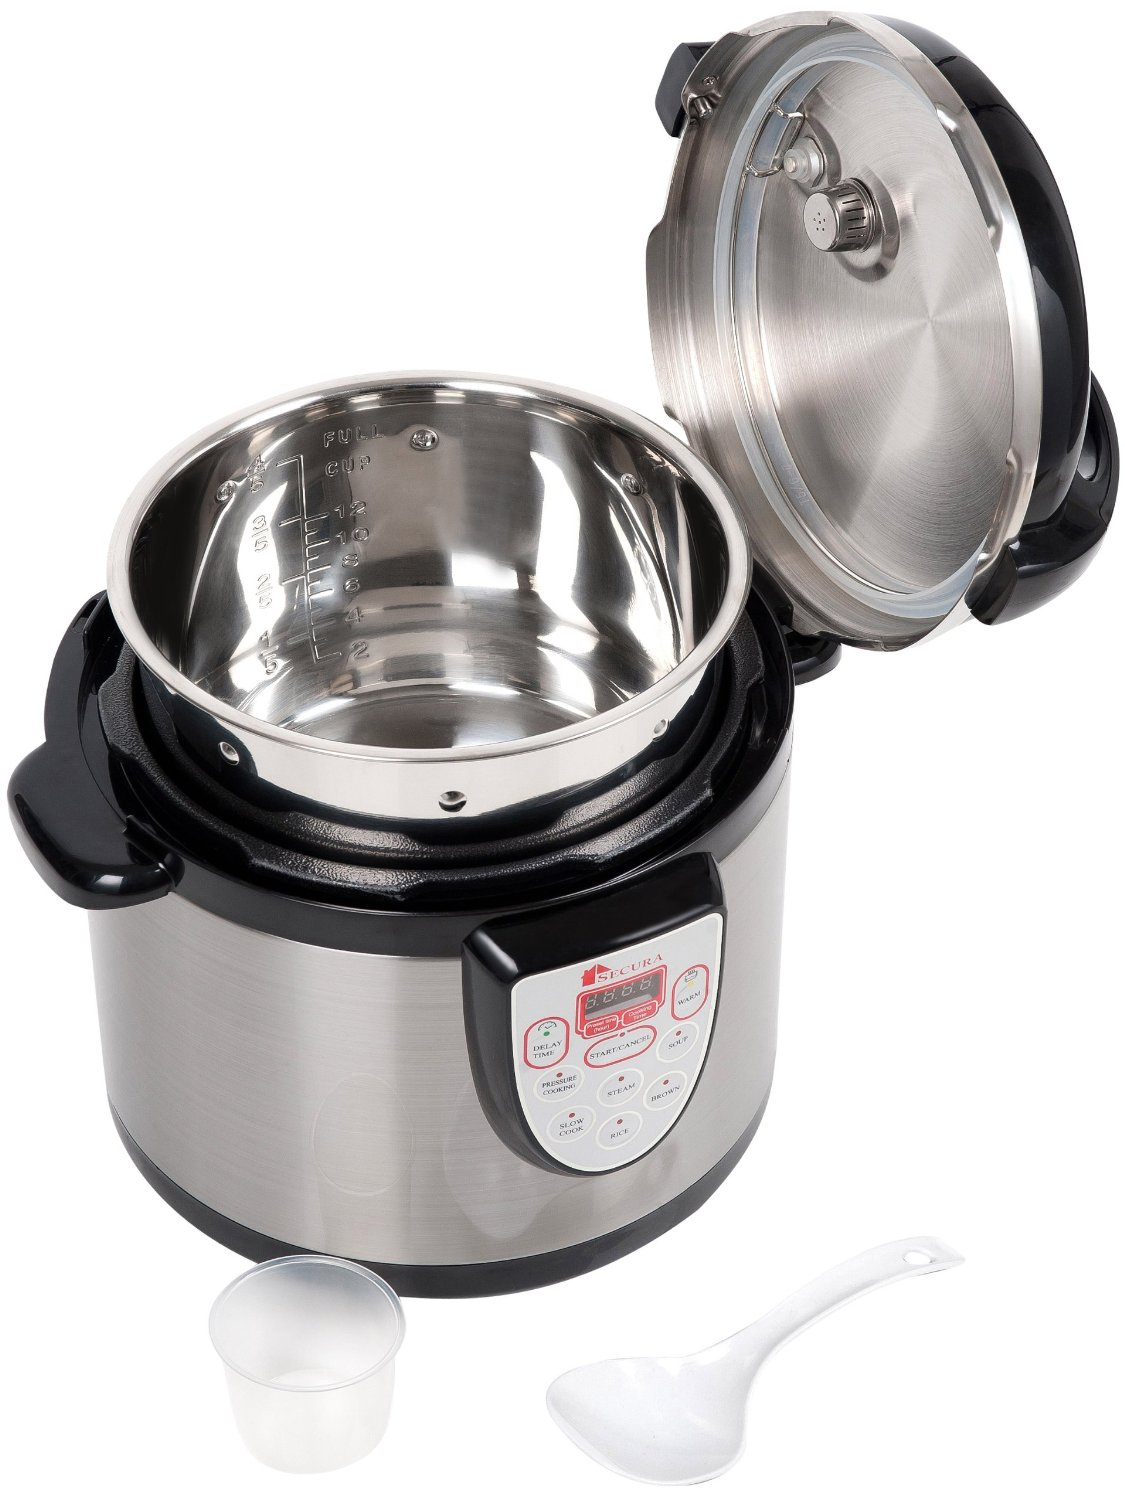 Cooking With Electric Rice Steamer ~ Secura in electric pressure cooker stainless steel